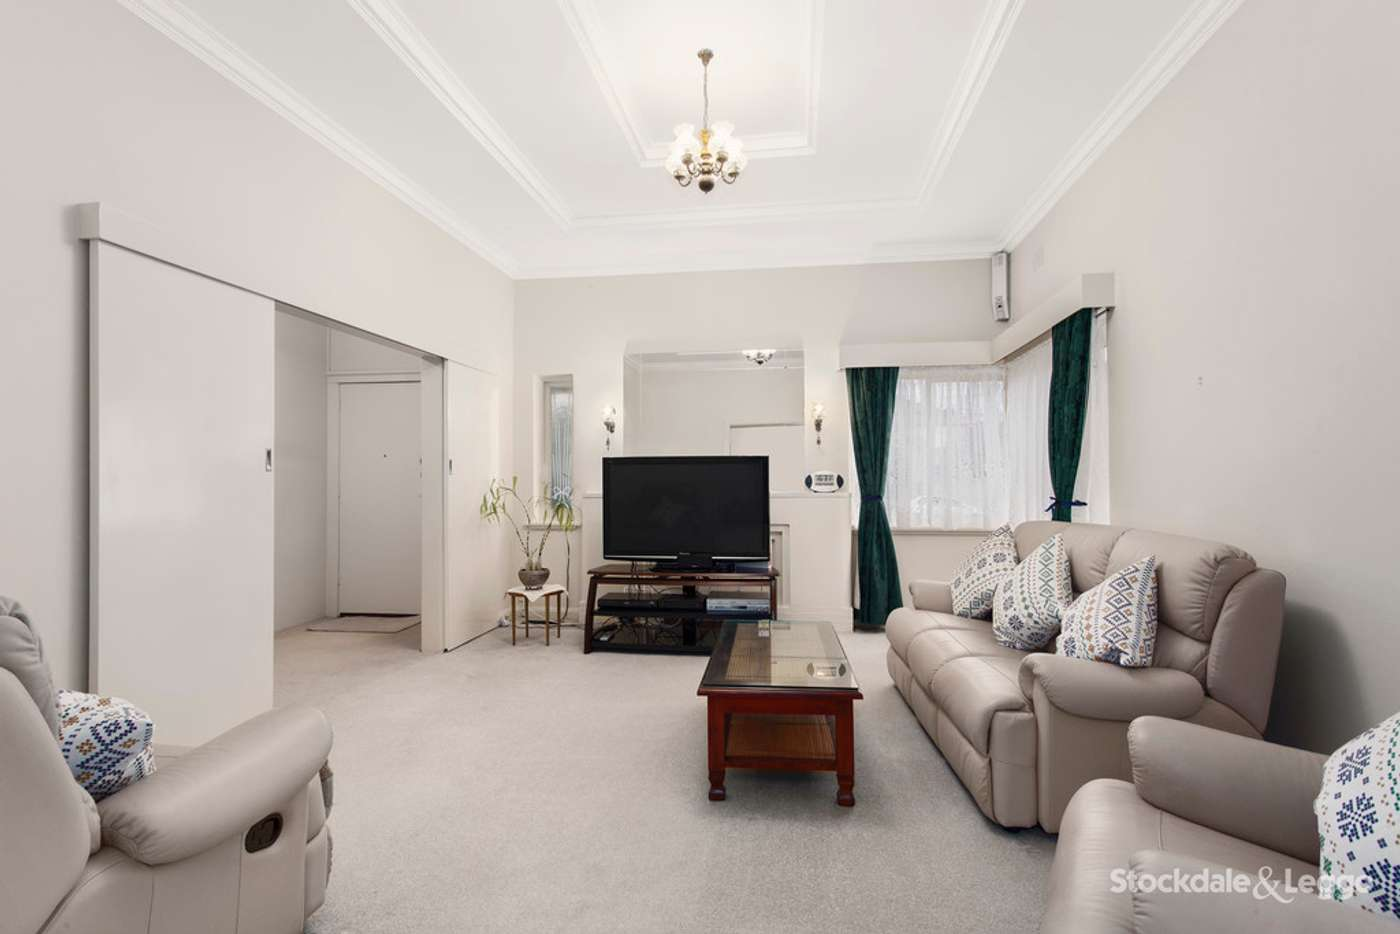 Fifth view of Homely house listing, 14 Innellan Road, Murrumbeena VIC 3163